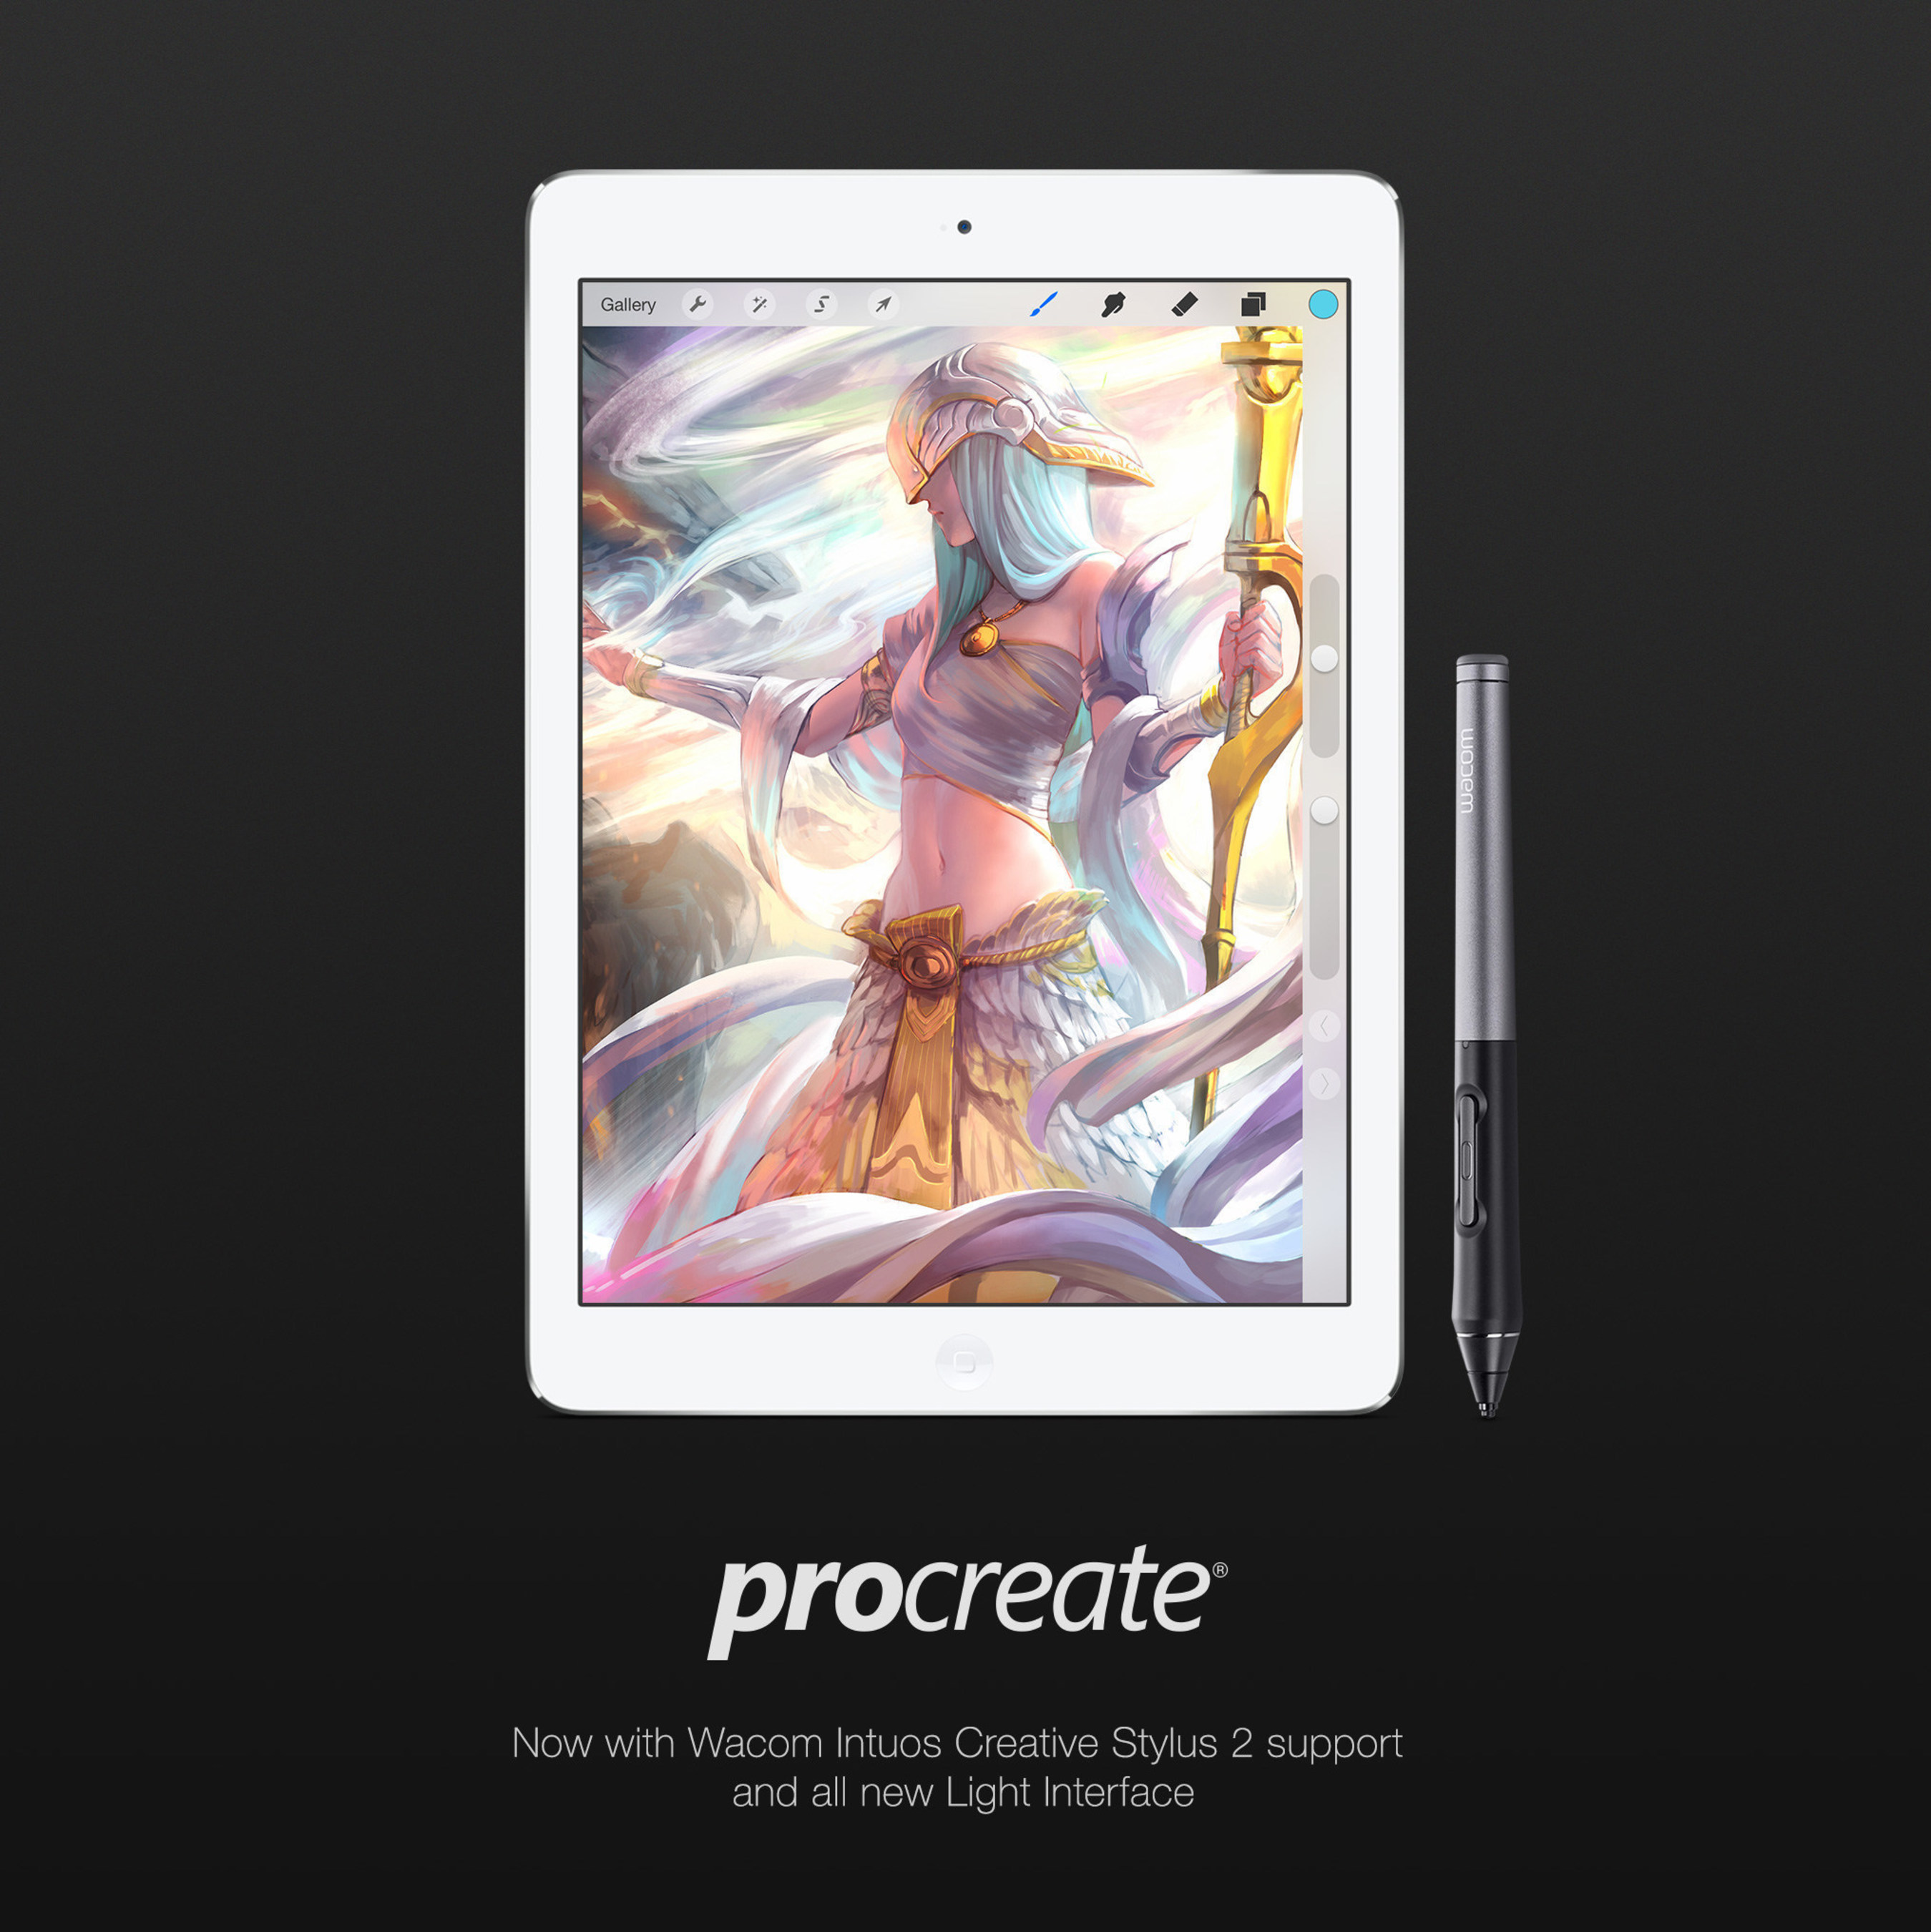 Good news for iPad artists: Procreate 2 3 now supports the